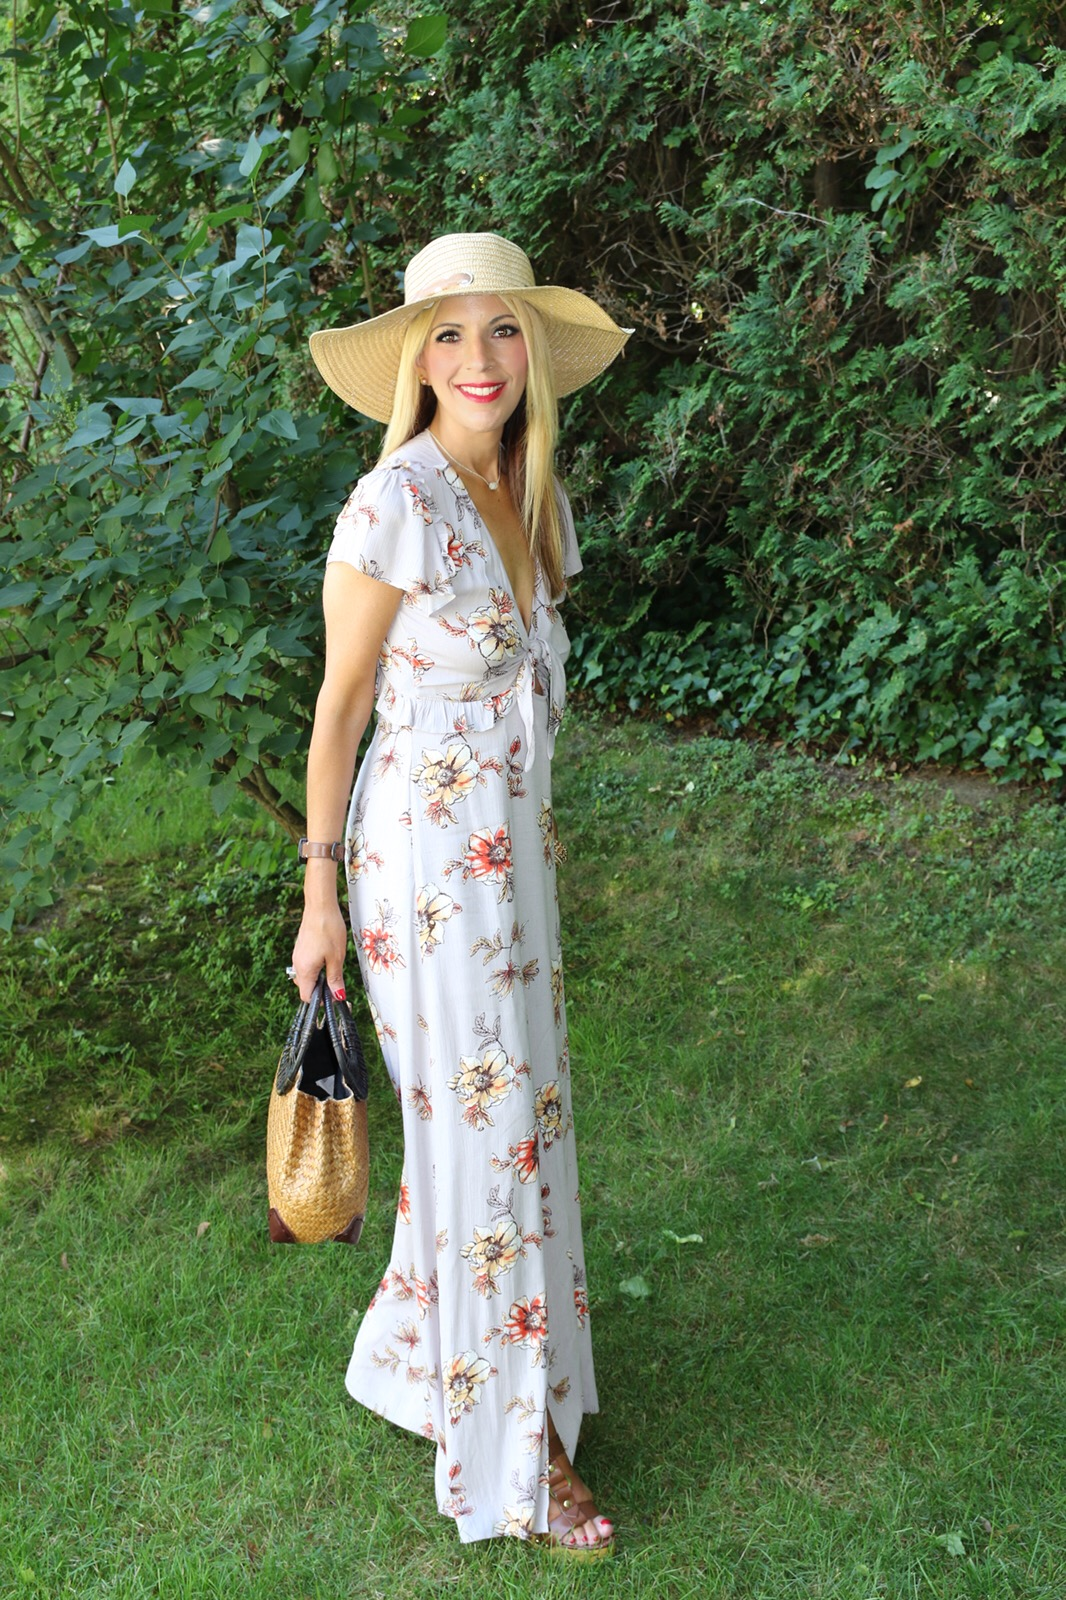 My bag is from  Lilia's   Beauty   Bag  and you can find a detailed description on  this   post  from last summer. It was one of my favorite bags last year and I find myself constantly using again this summer.